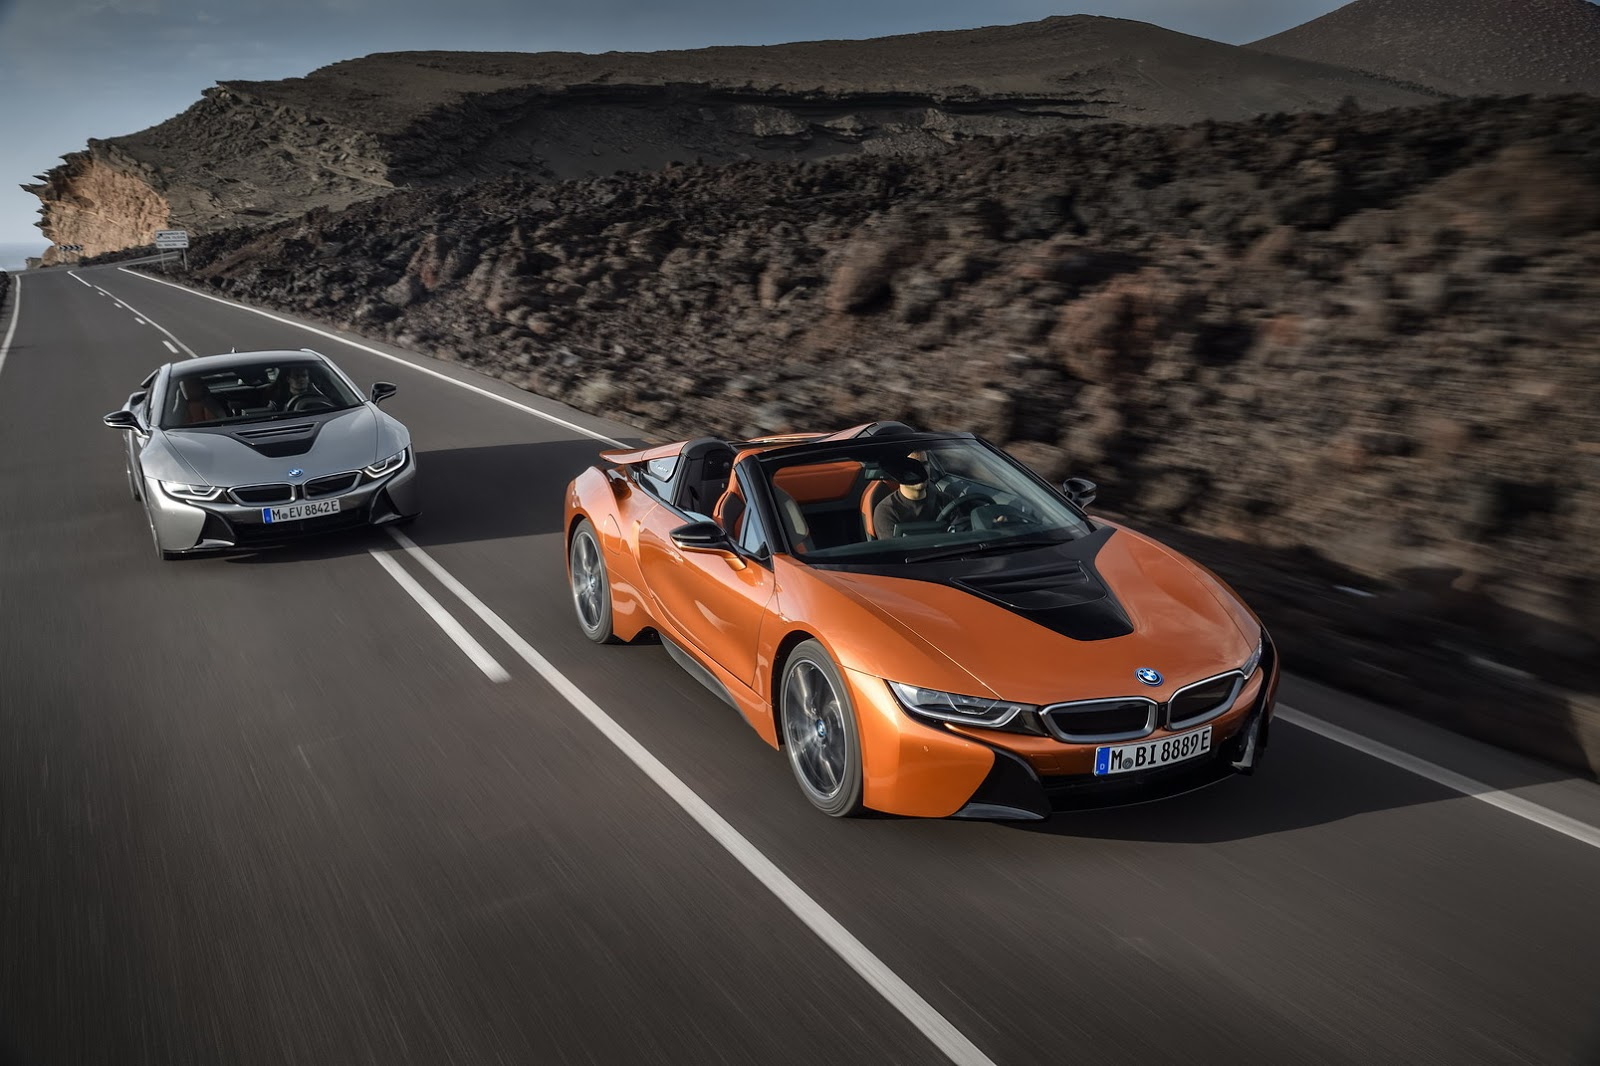 2019-BMW-i8-Roadster-Coupe-37.jpg